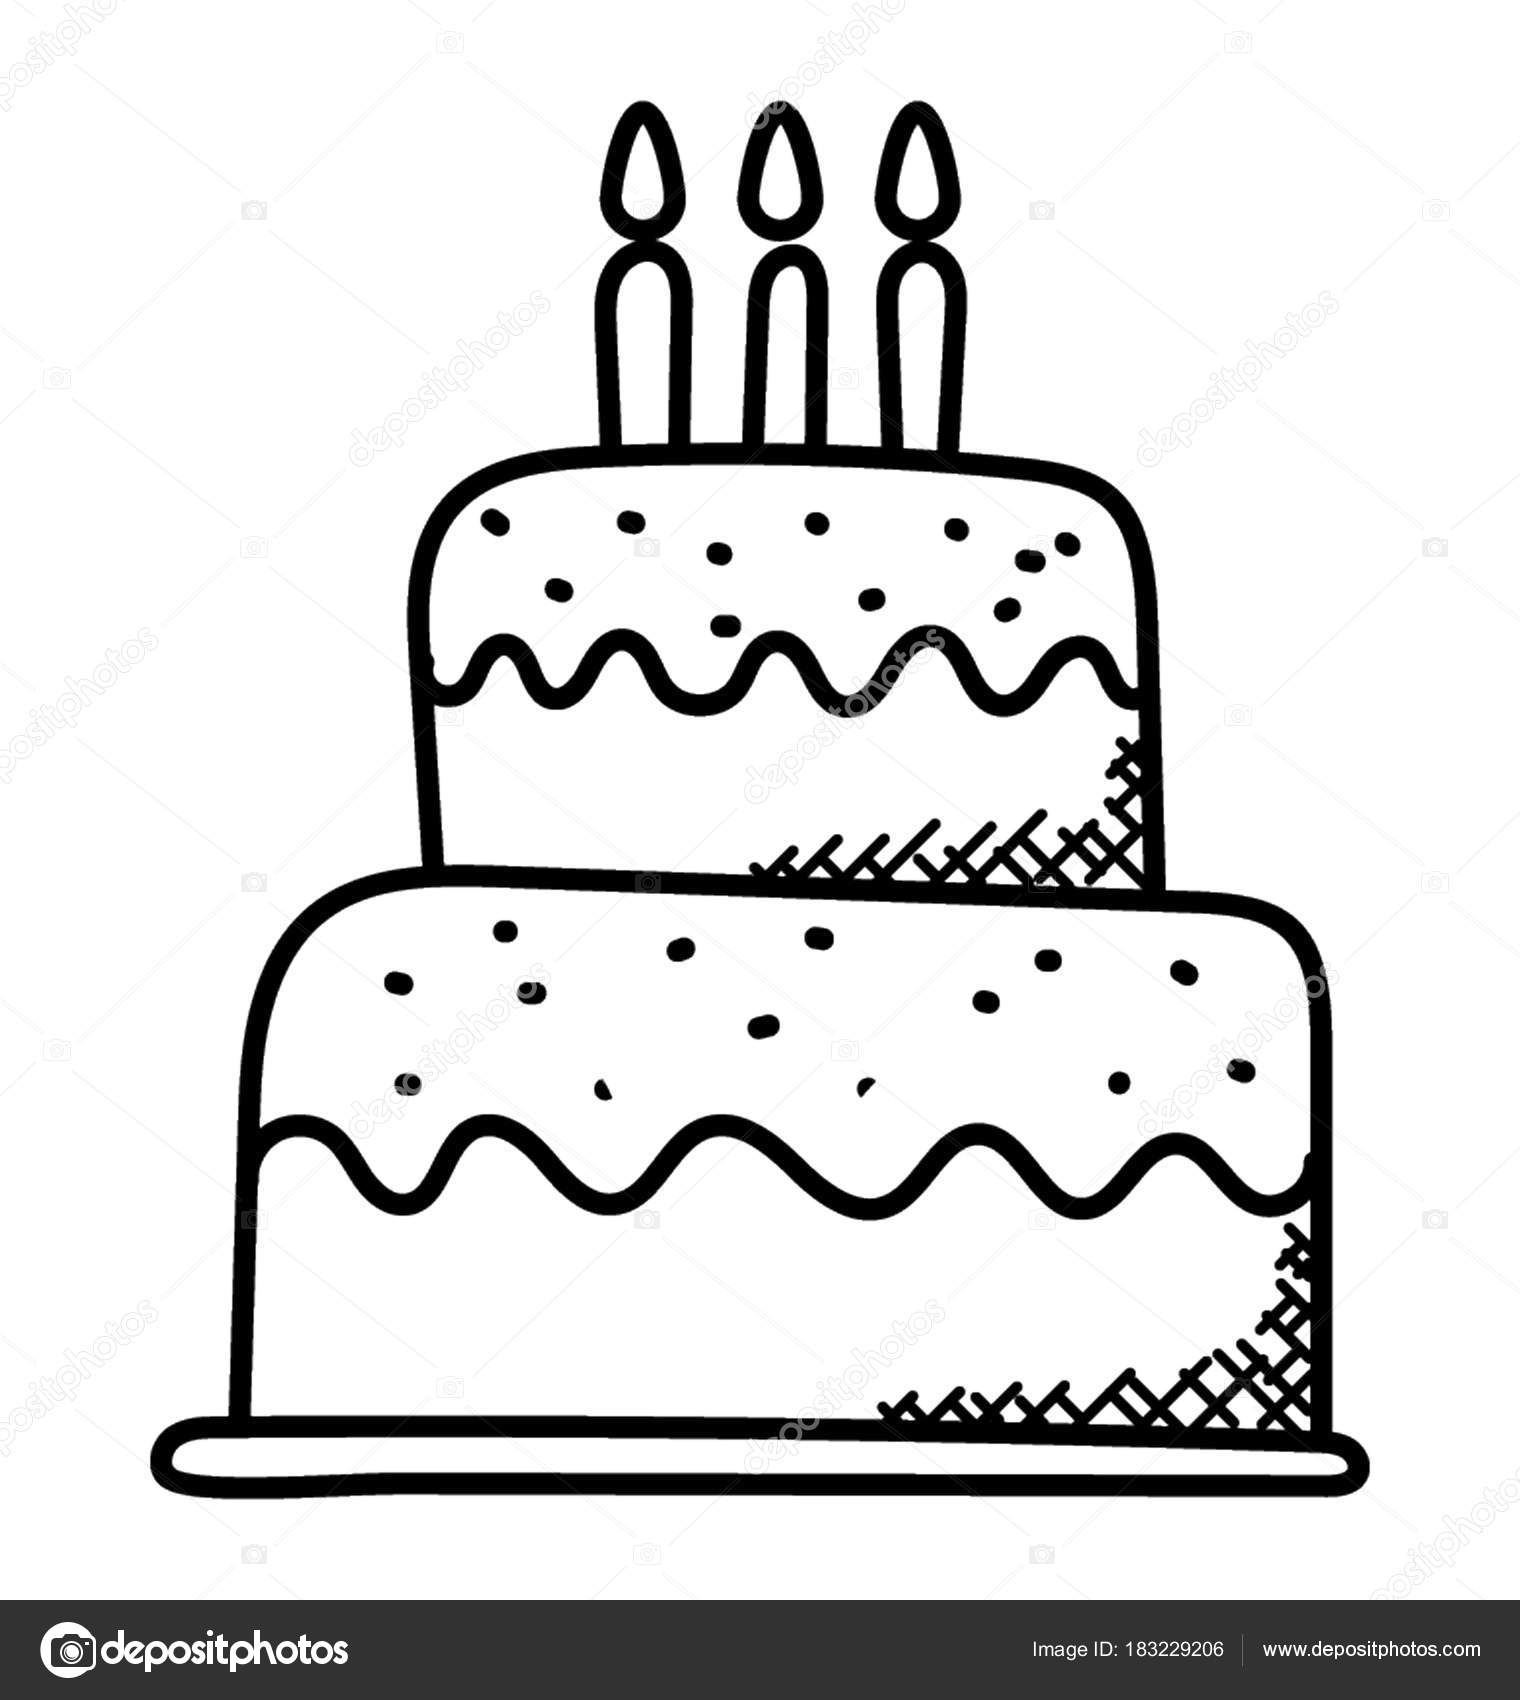 A Beautiful Big Cake With Candles Birthday Concept Doodle Icon Stock Illustration